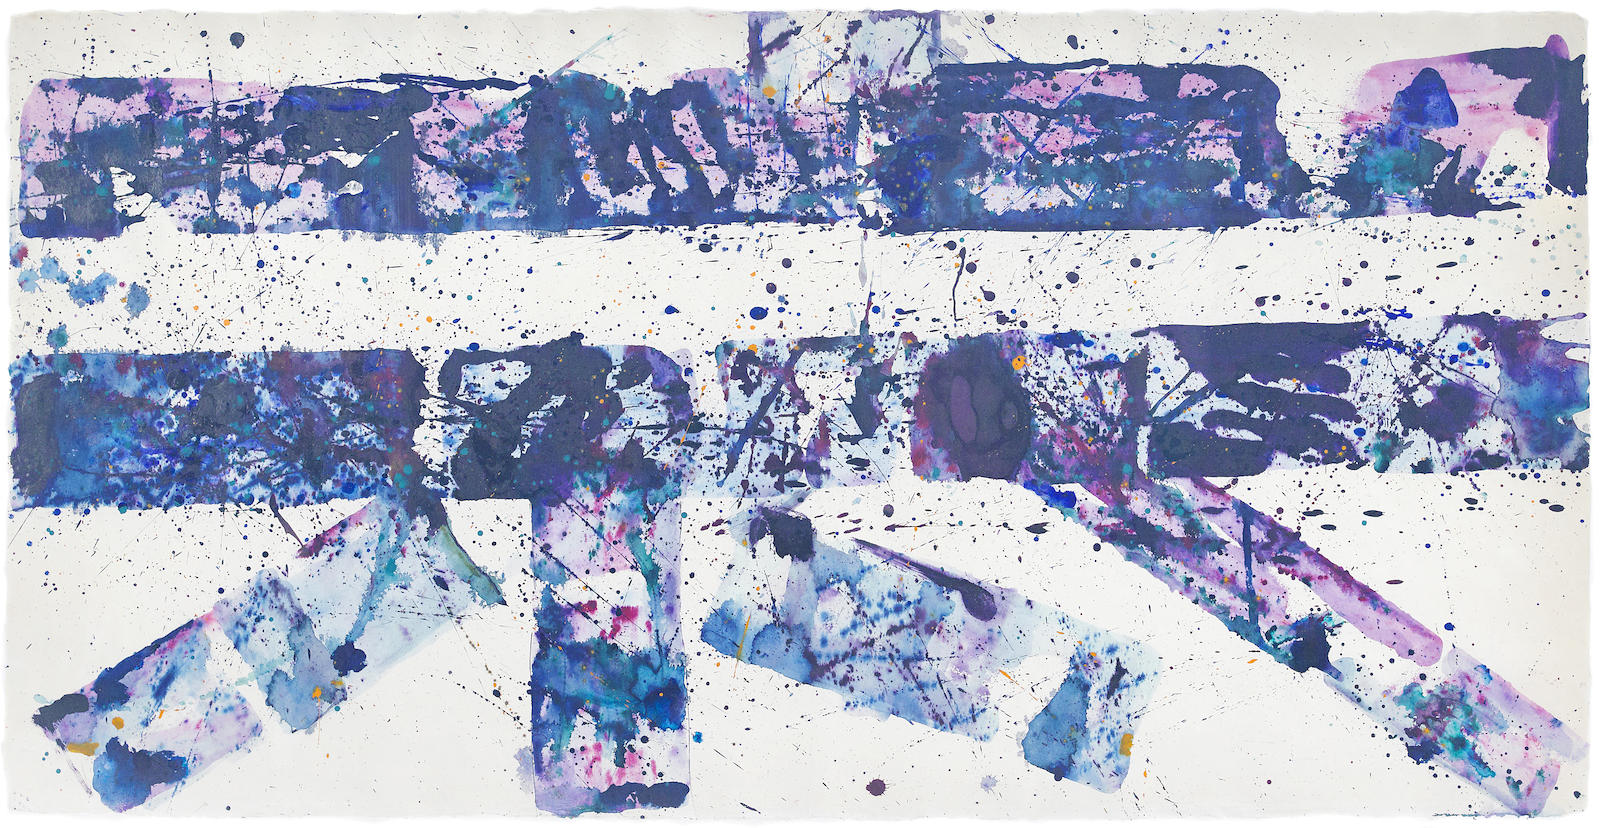 Sam Francis-Untitled (SF77-121)-1977